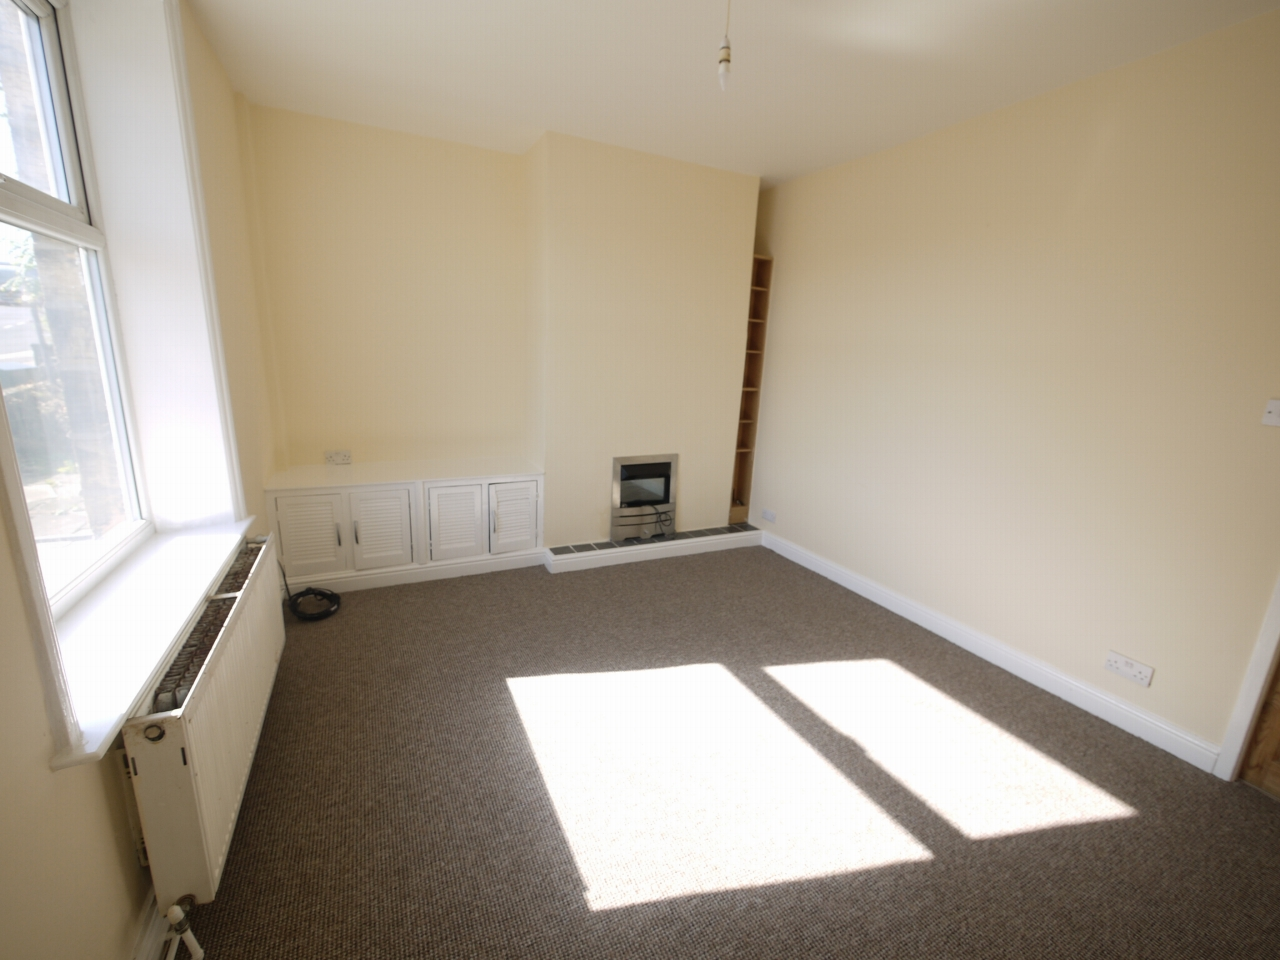 2 bedroom mid terraced house Let in Huddersfield - Photograph 2.